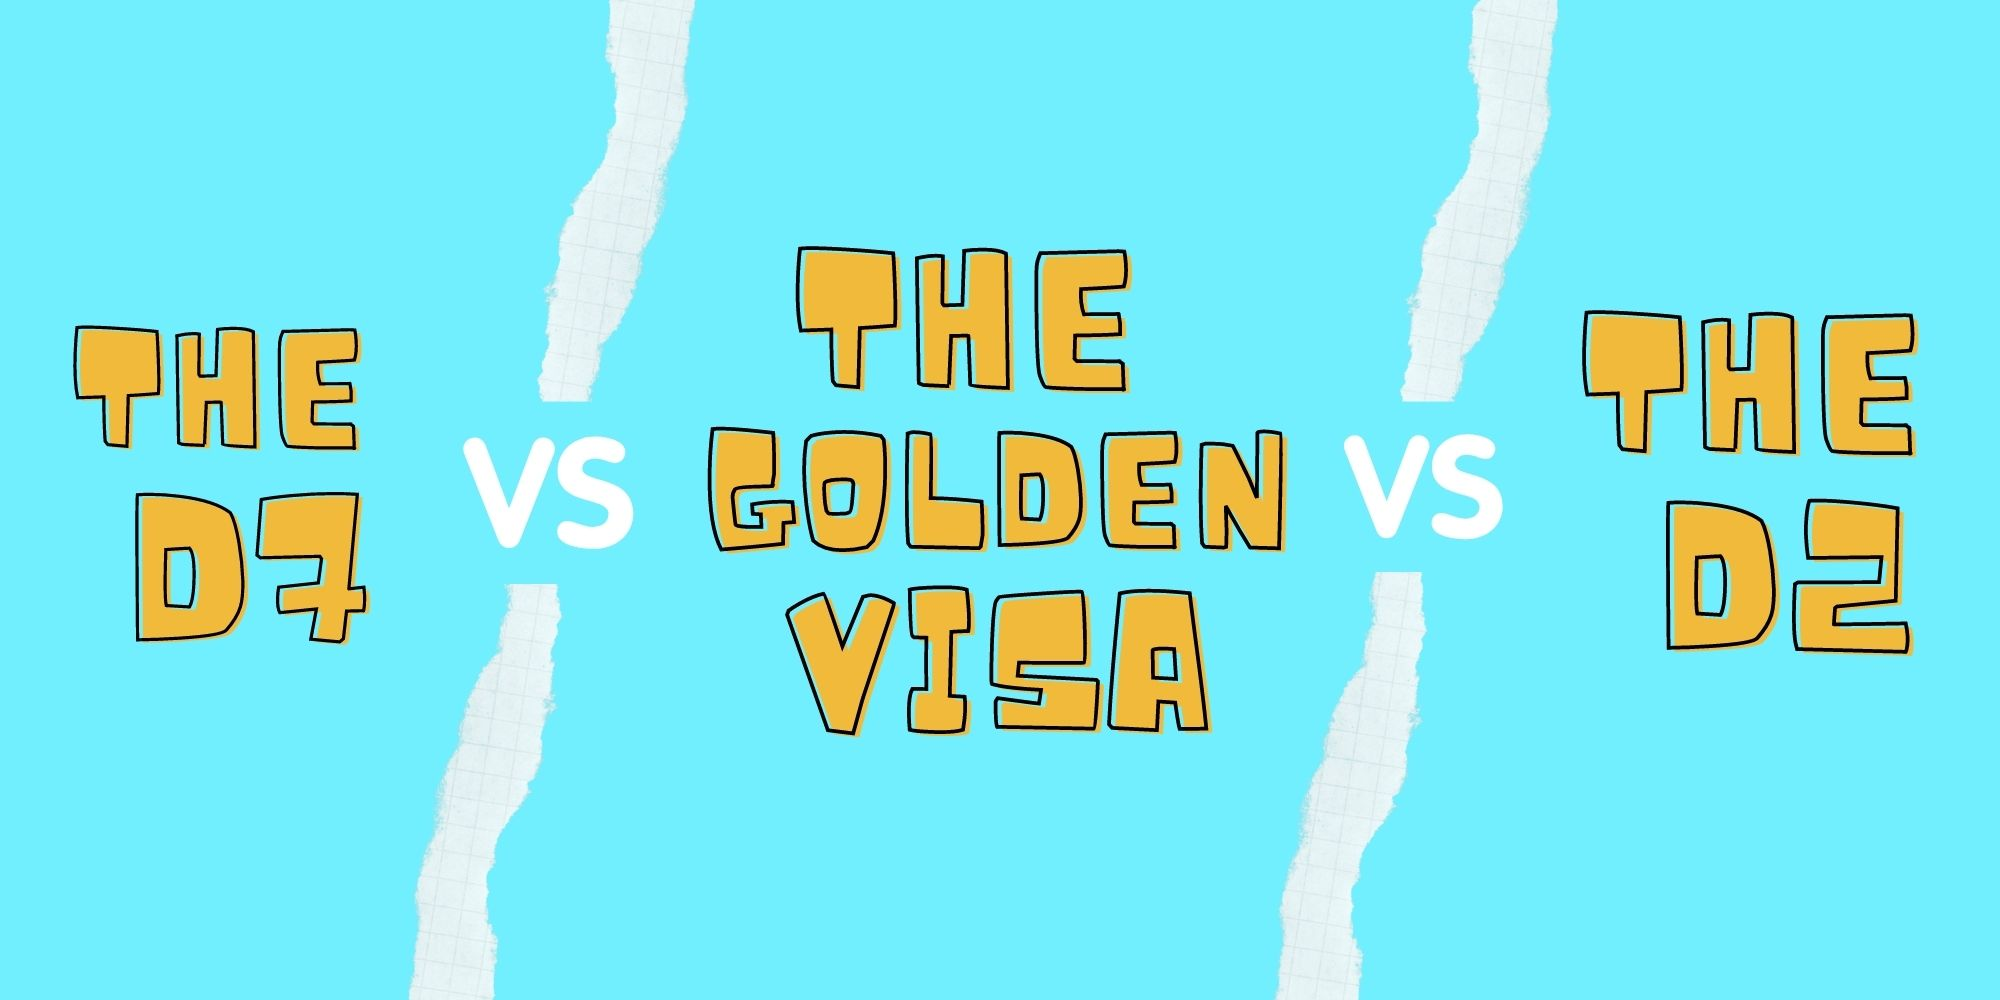 D7 VS Golden Visa VS D2 header image